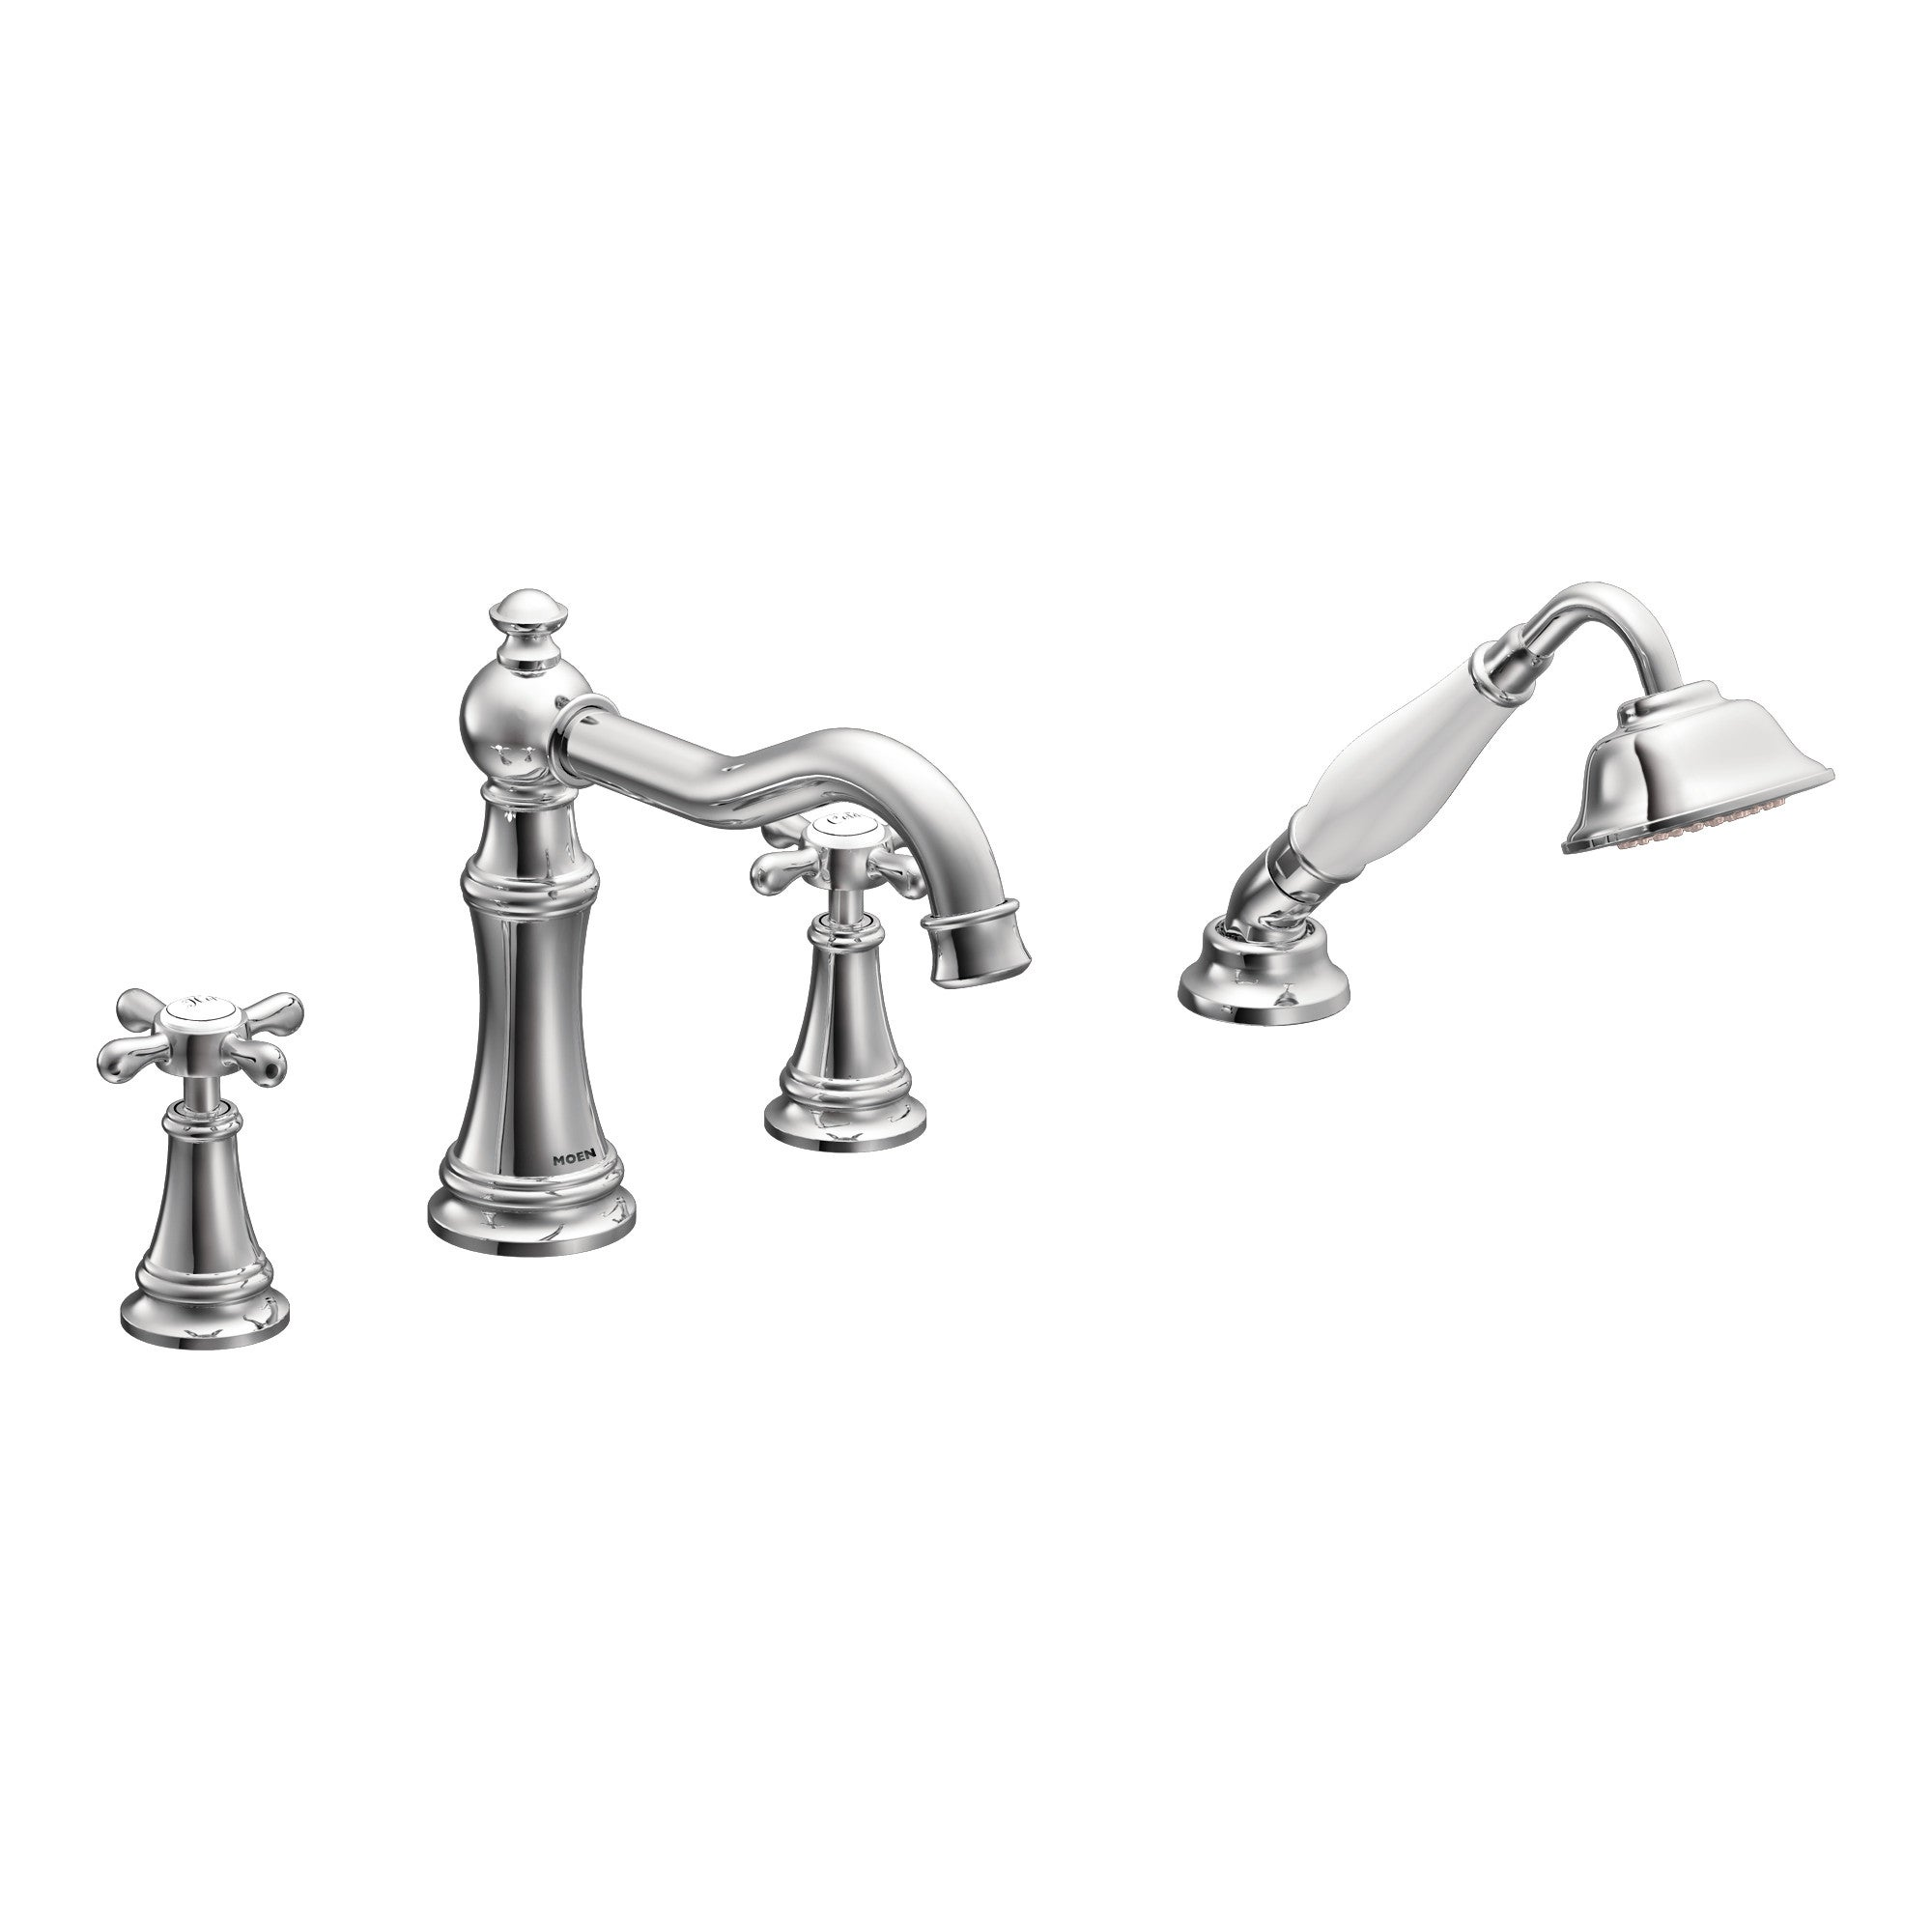 Moen Chrome Two-Handle Tub Faucet Includes Hand Shower